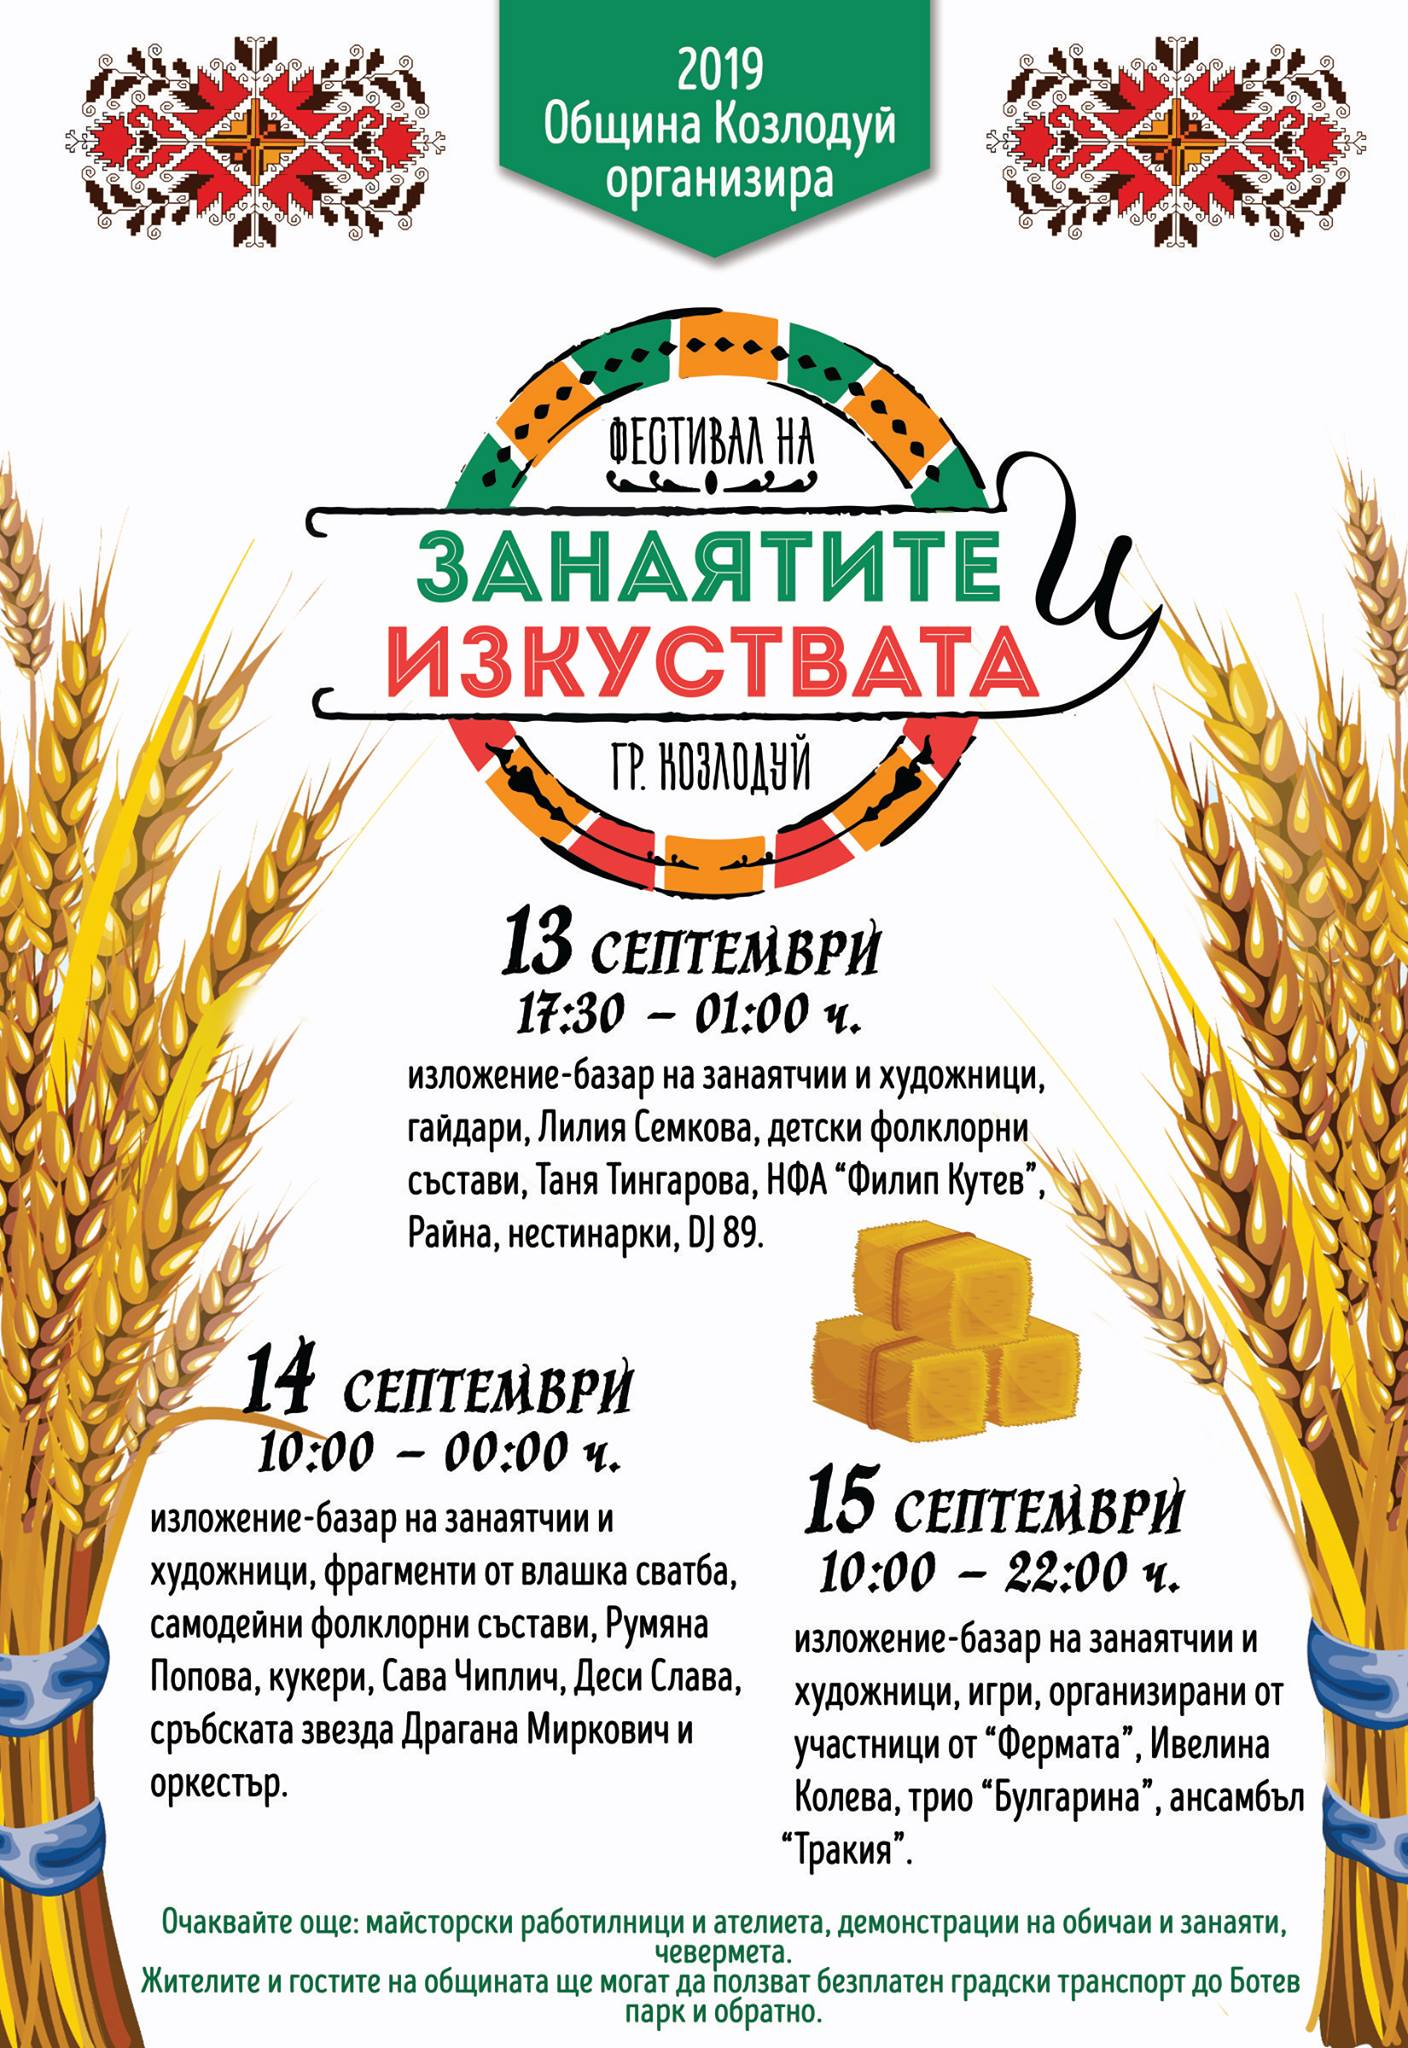 Kozloduy Municipality invites you to the Festival of Crafts and Arts